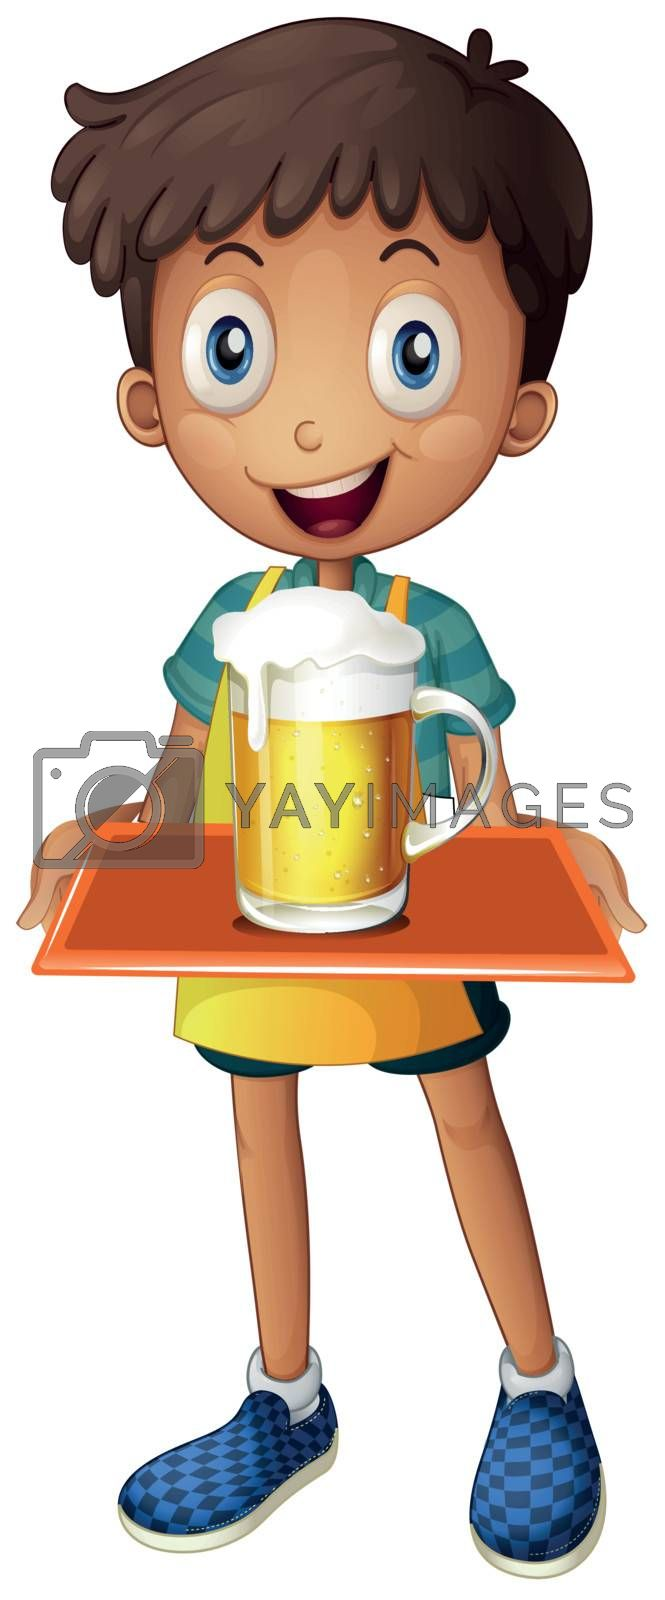 Illustration of a young boy holding a tray with a mug of beer on a white background